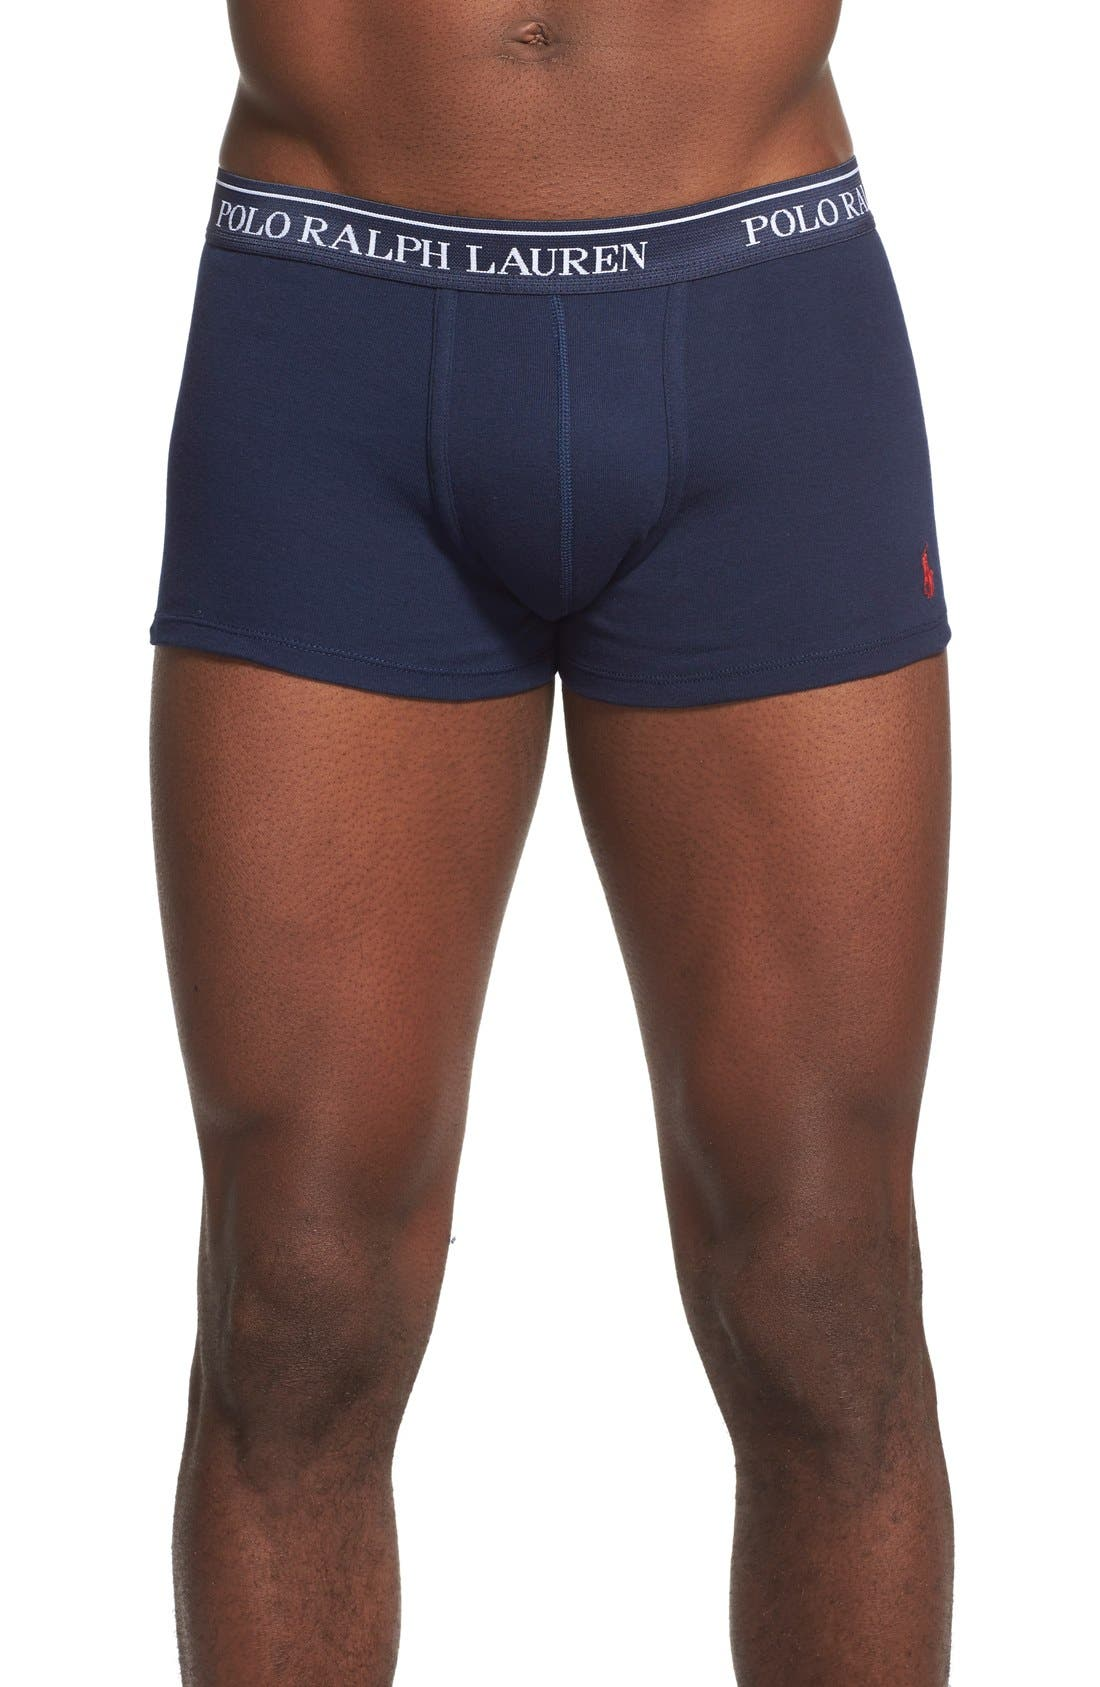 3-Pack Cotton Trunks,                         Main,                         color, Cruise Navy/ Blue